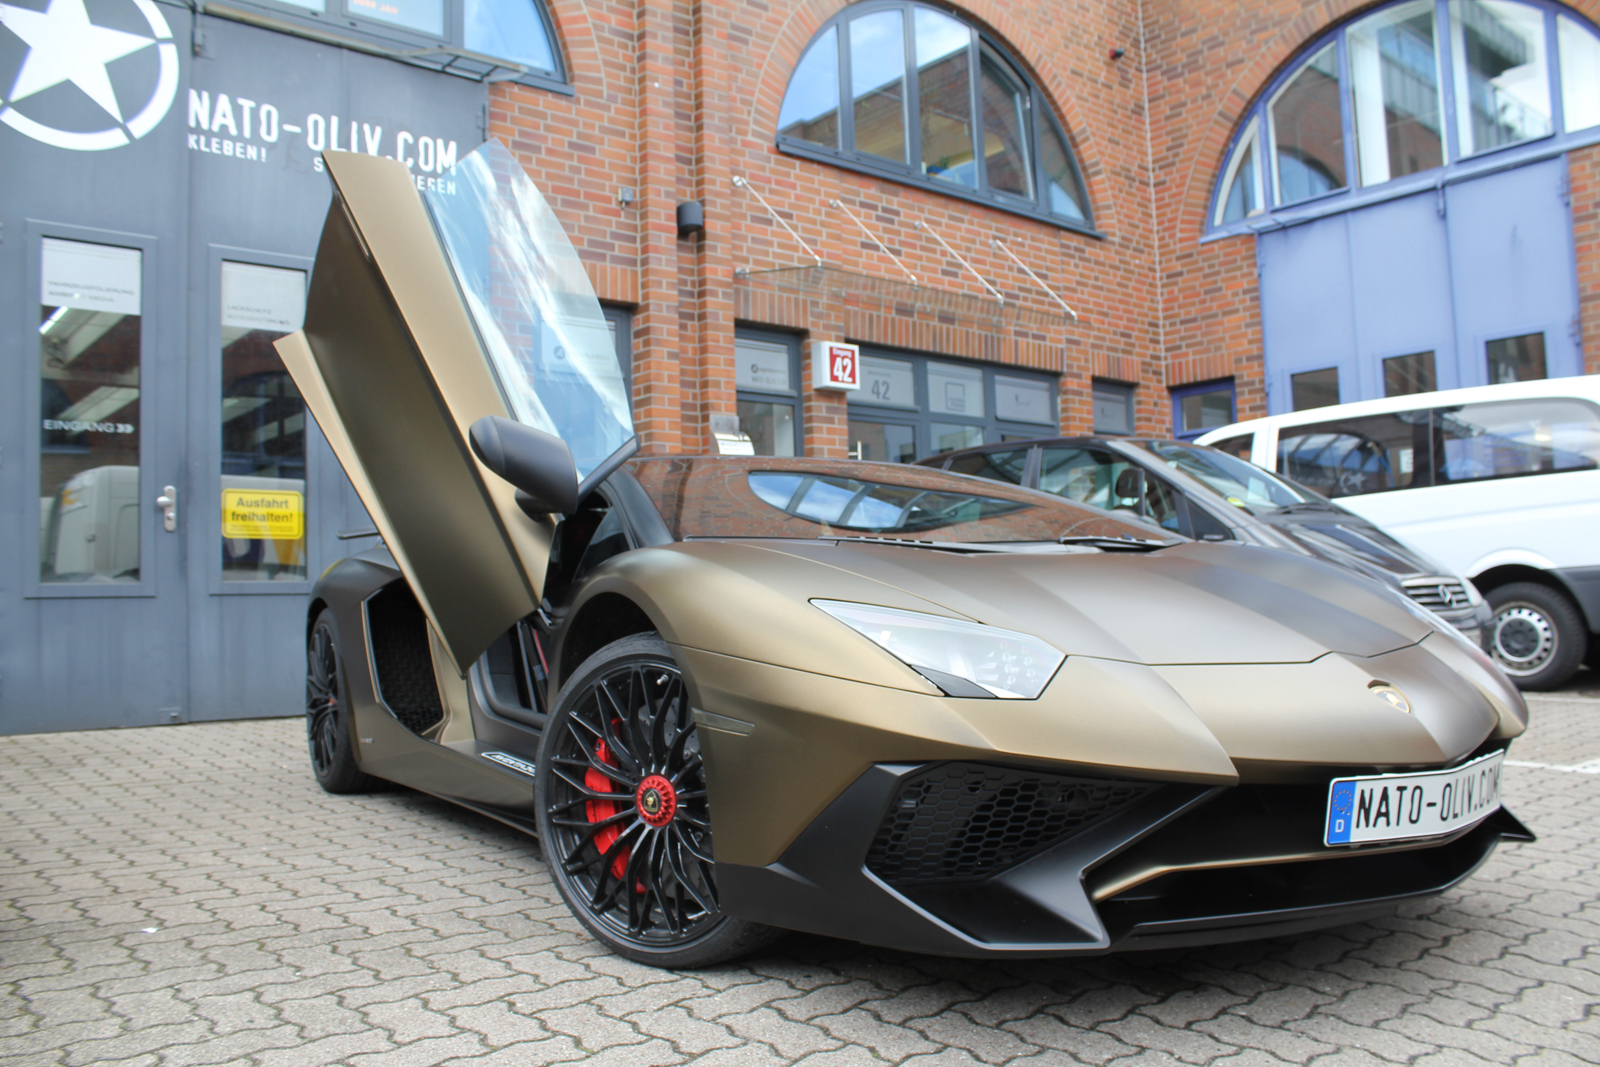 LAMBORGHINI_AVENTADOR_SV_CAR-WRAPPING_BOND_GOLD_06